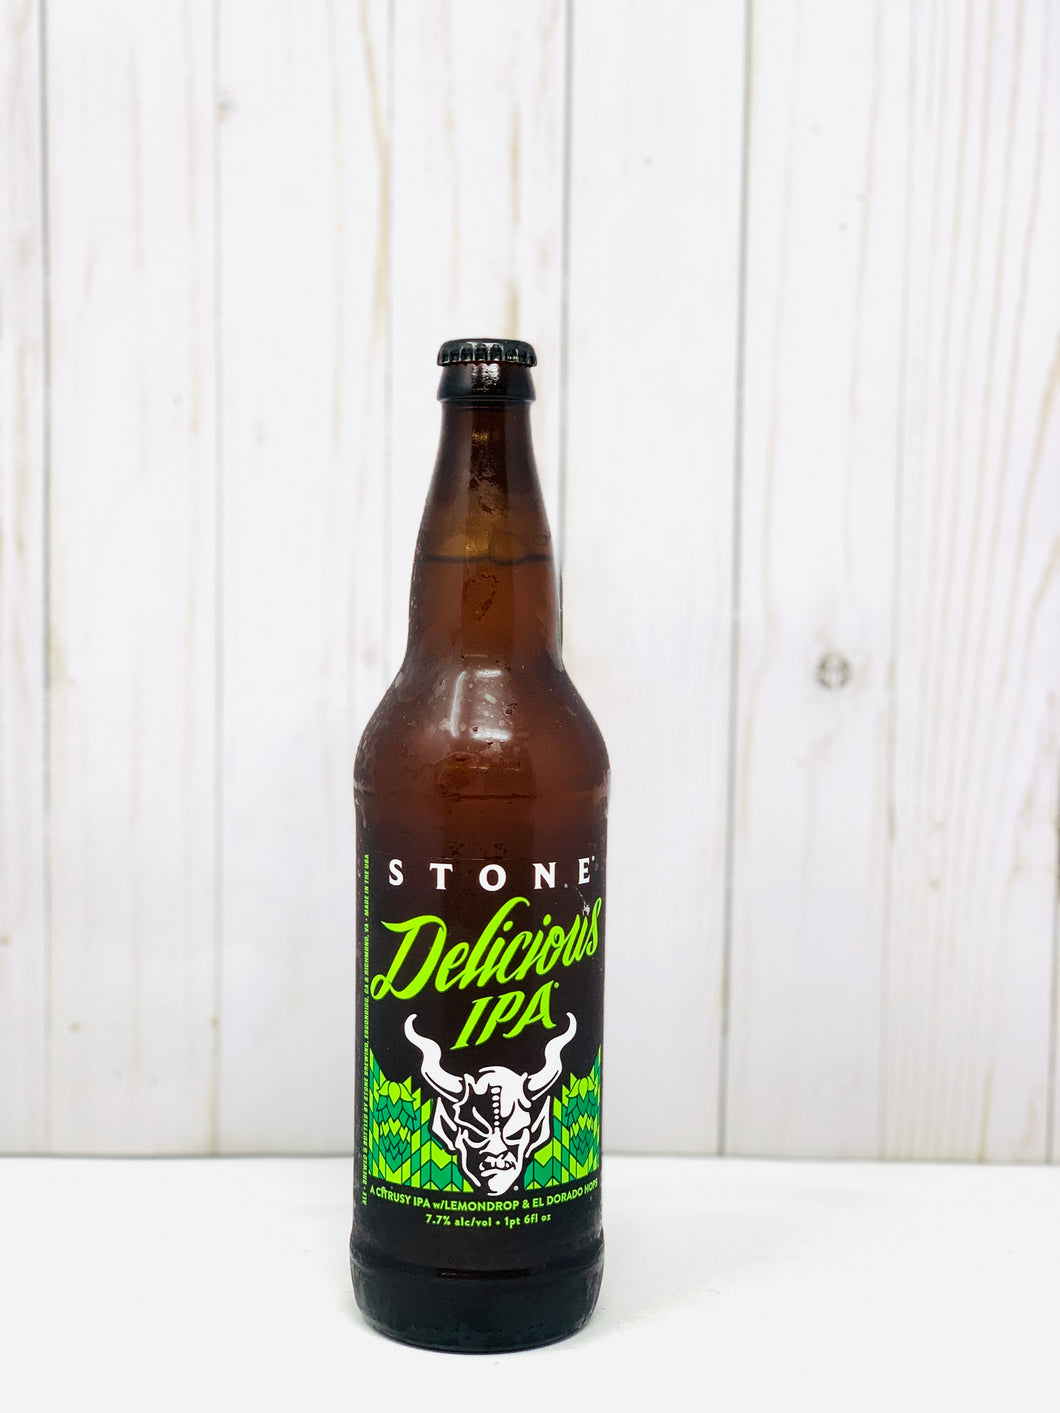 STONE BREWING CO. - Palmspringsliquorstore